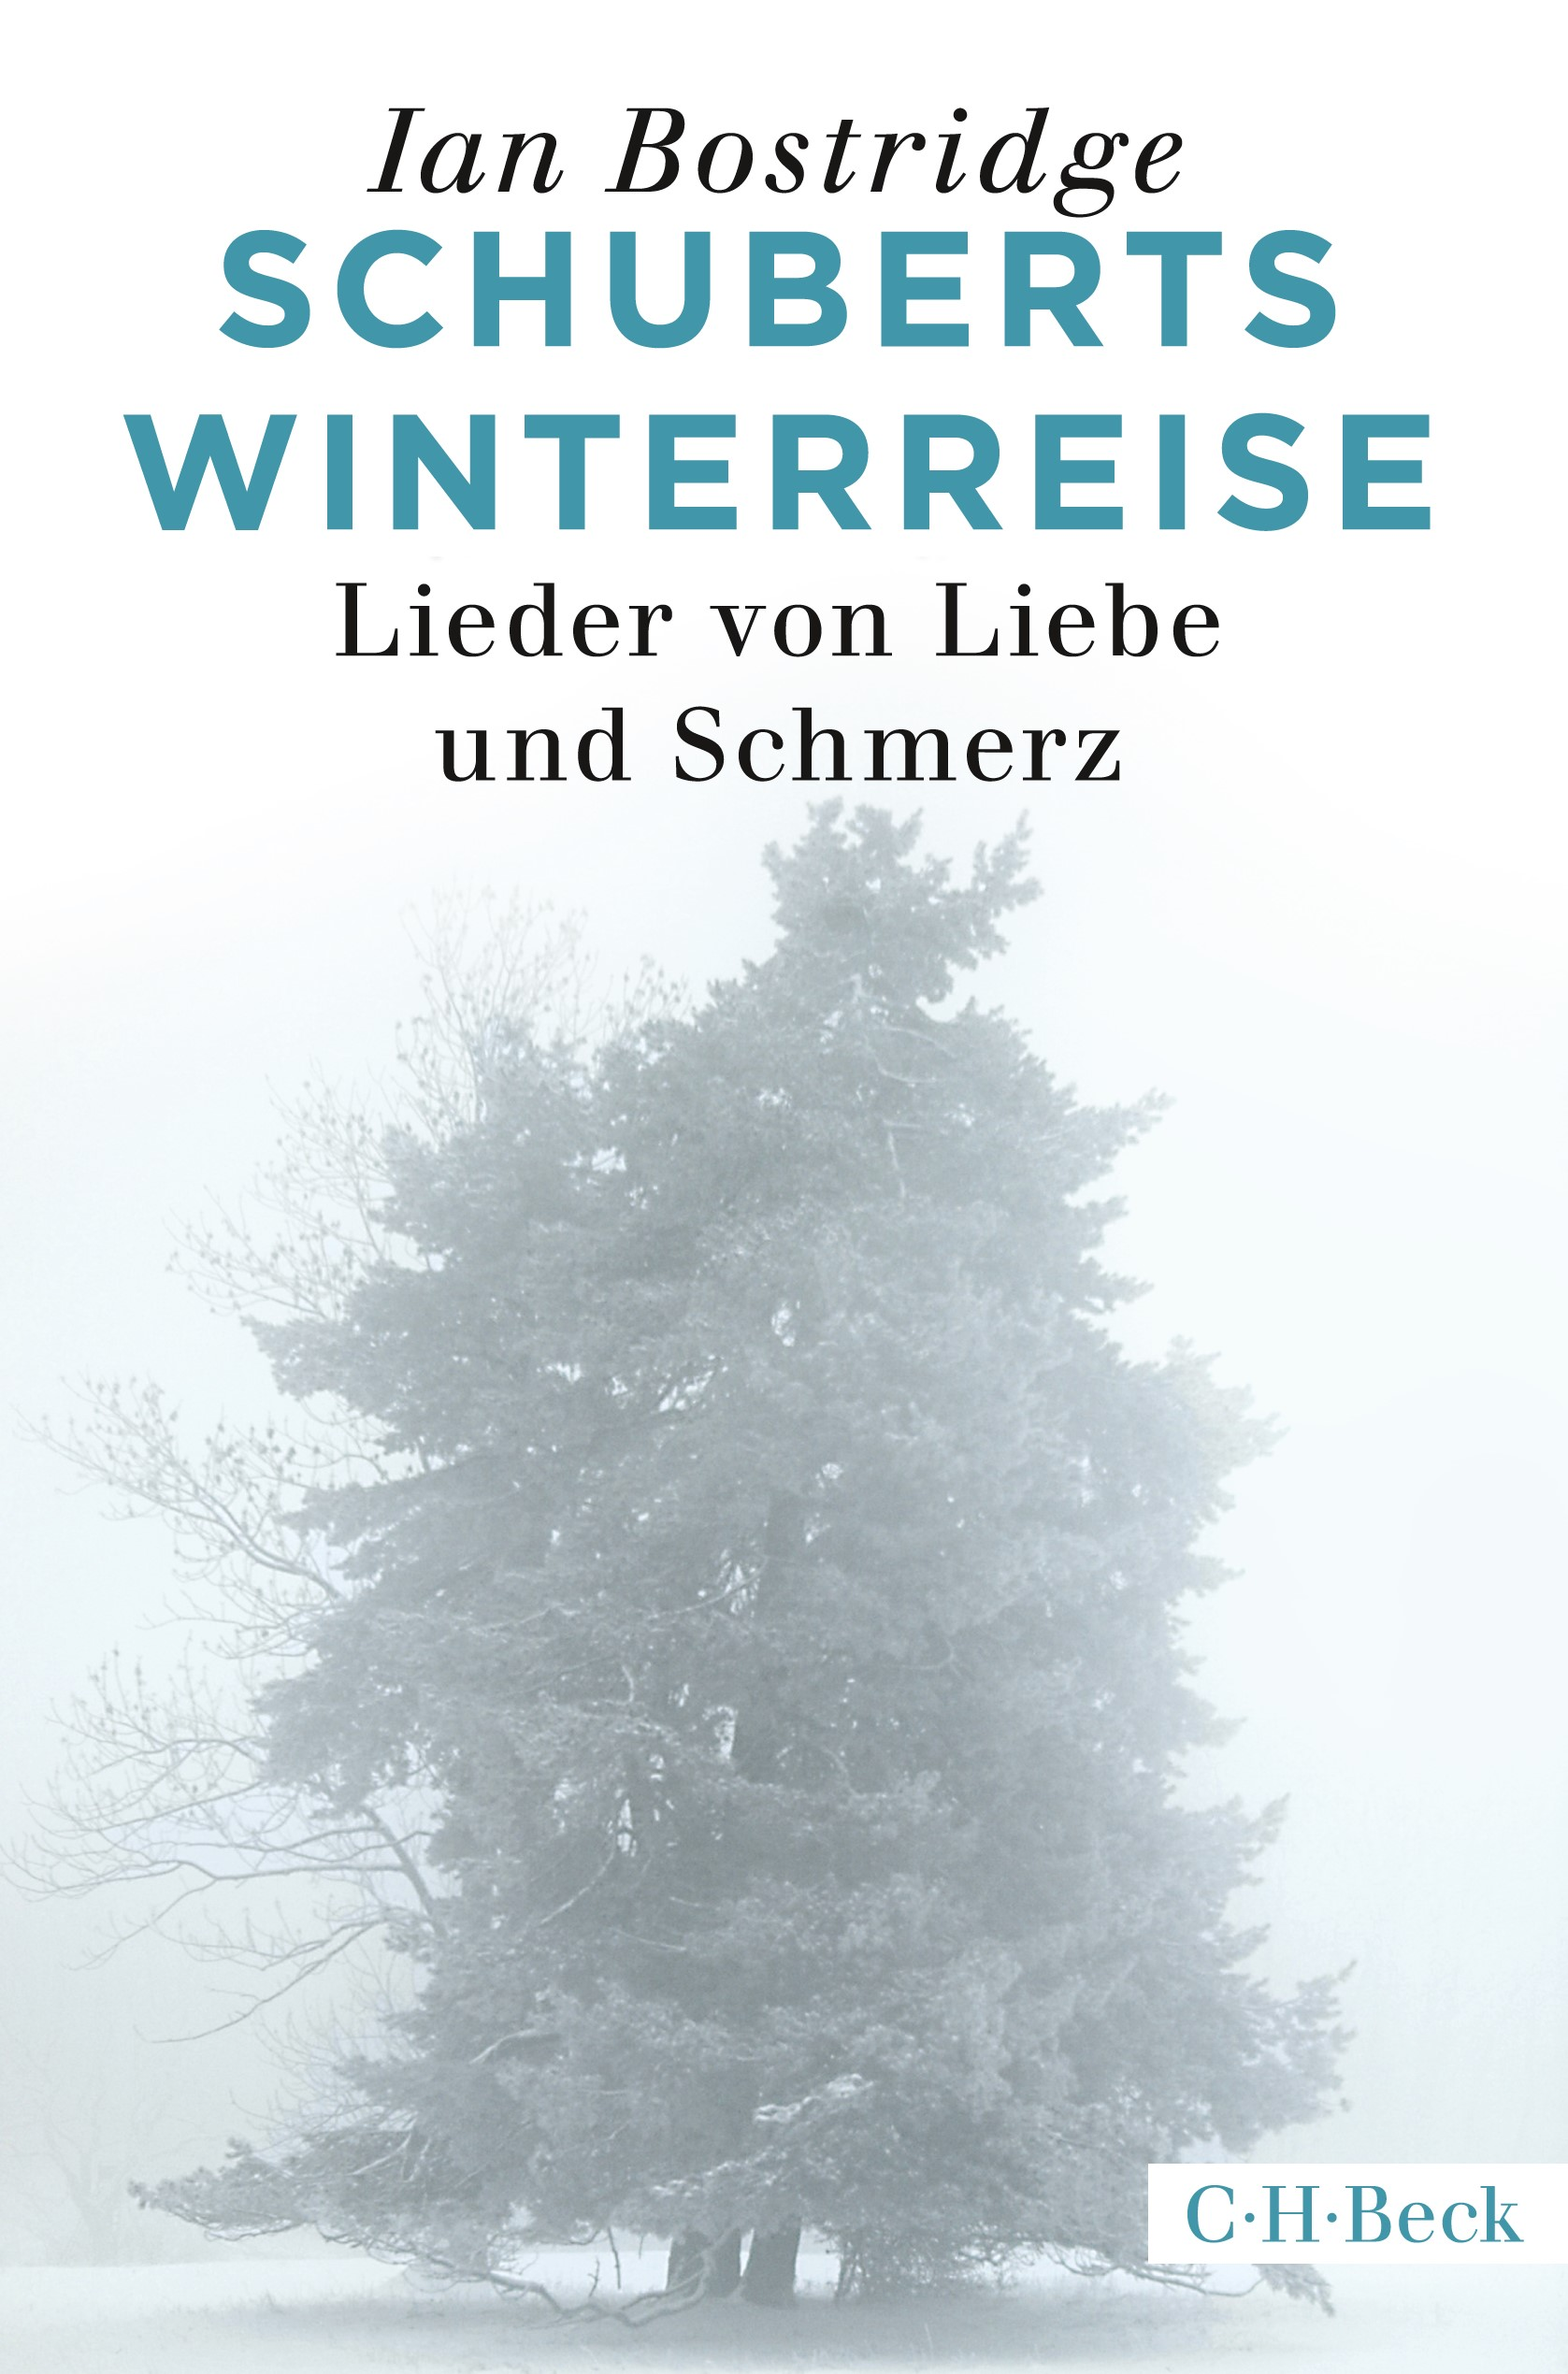 Schuberts Winterreise | Bostridge, Ian, 2017 | Buch (Cover)